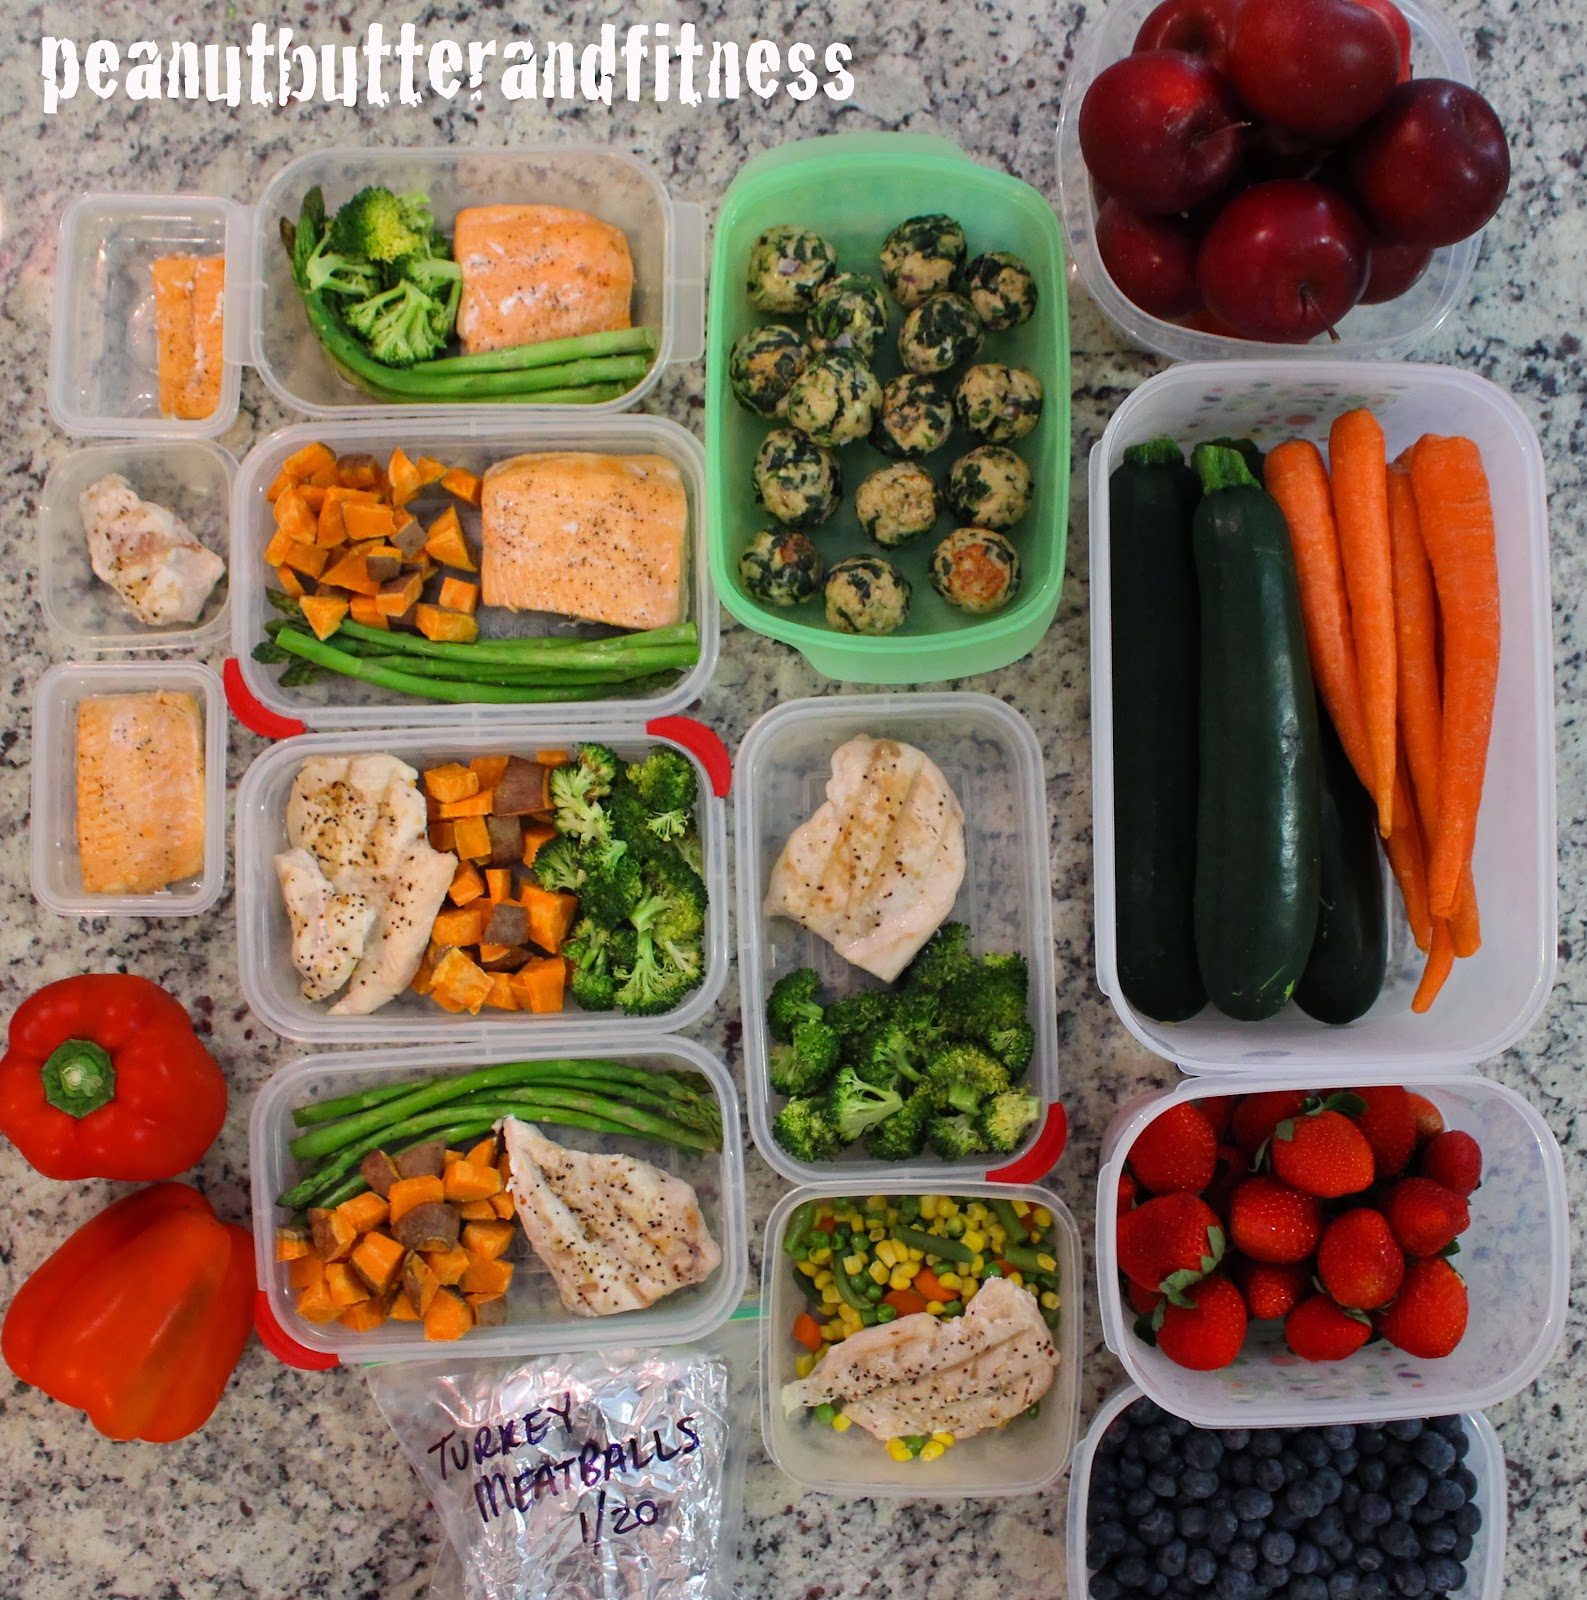 Peanut butter and fitness meal prep 101 and 1 week meal prep